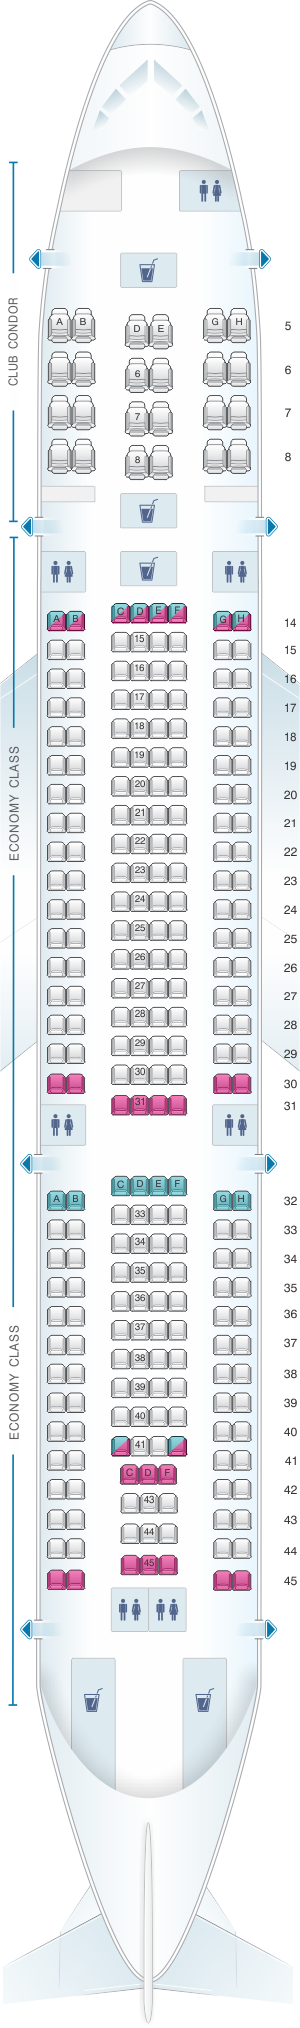 Seat map for Aerolineas Argentinas Airbus A330 200